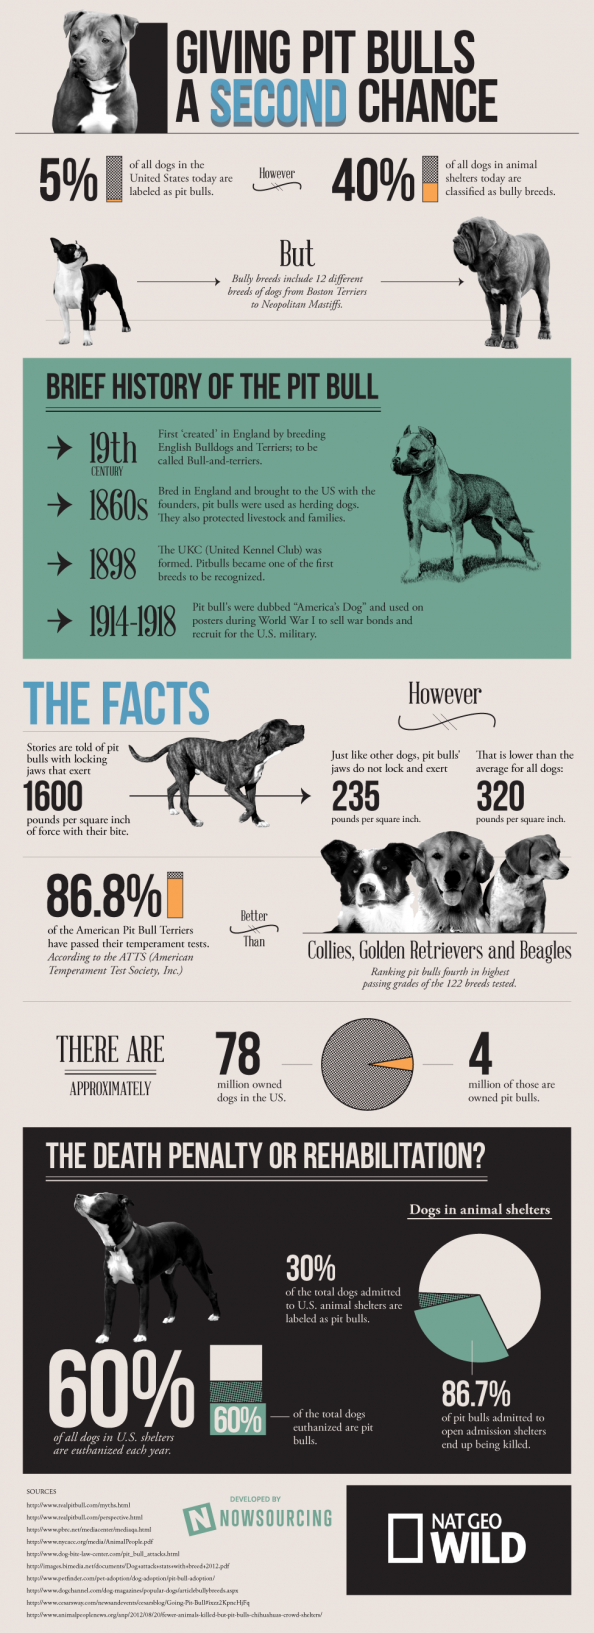 Giving Pit Bulls a Second Chance Infographic